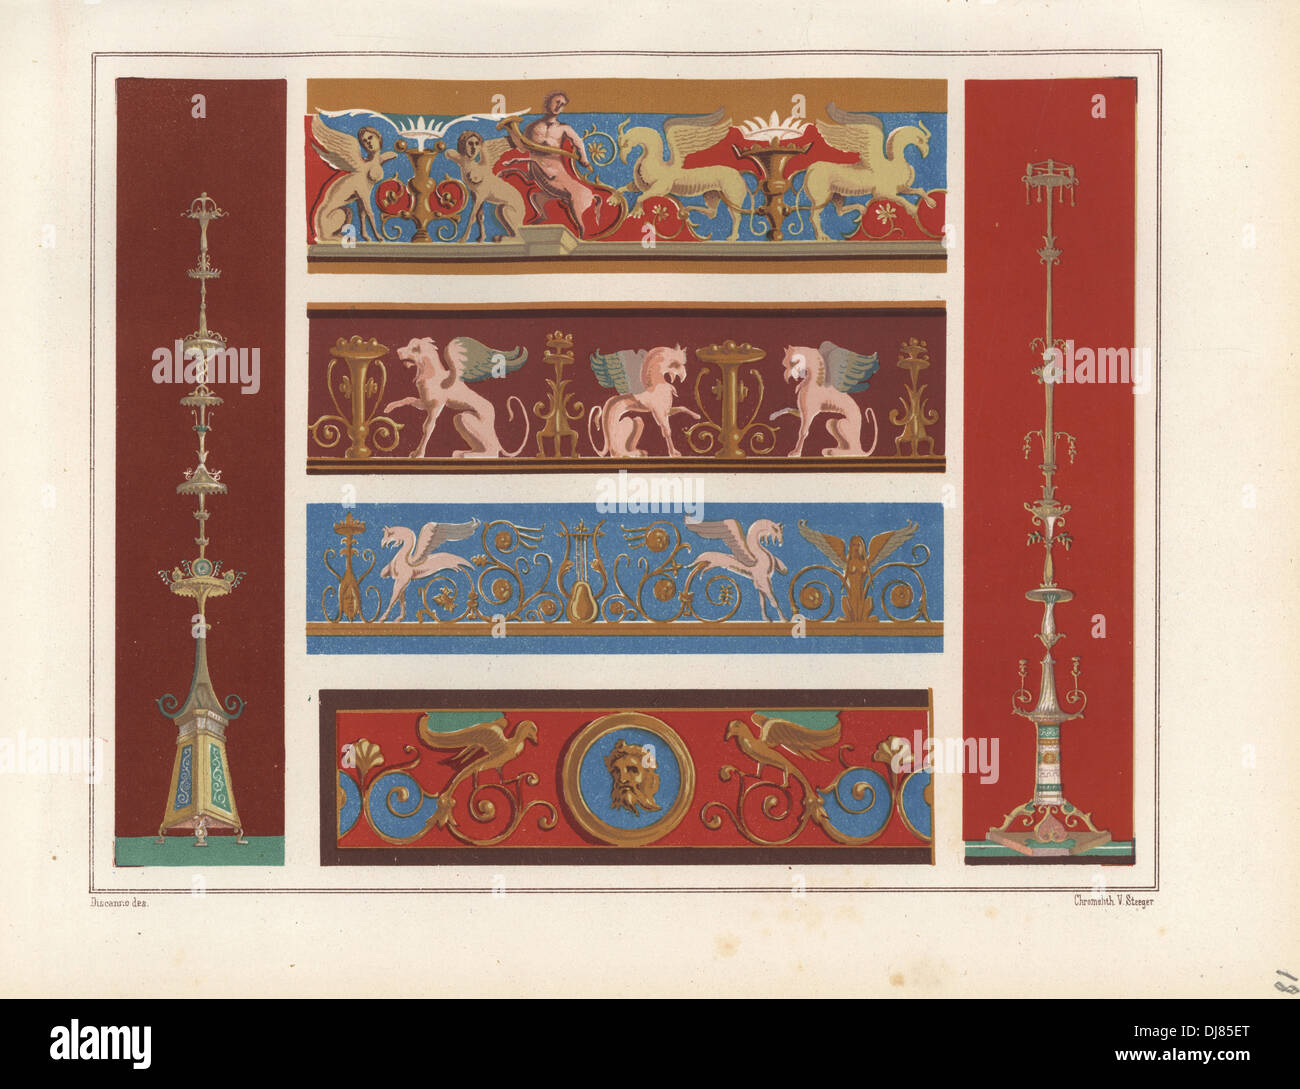 Murals of candelabra, griffin, frieze and arabesque from Pompeii. - Stock Image